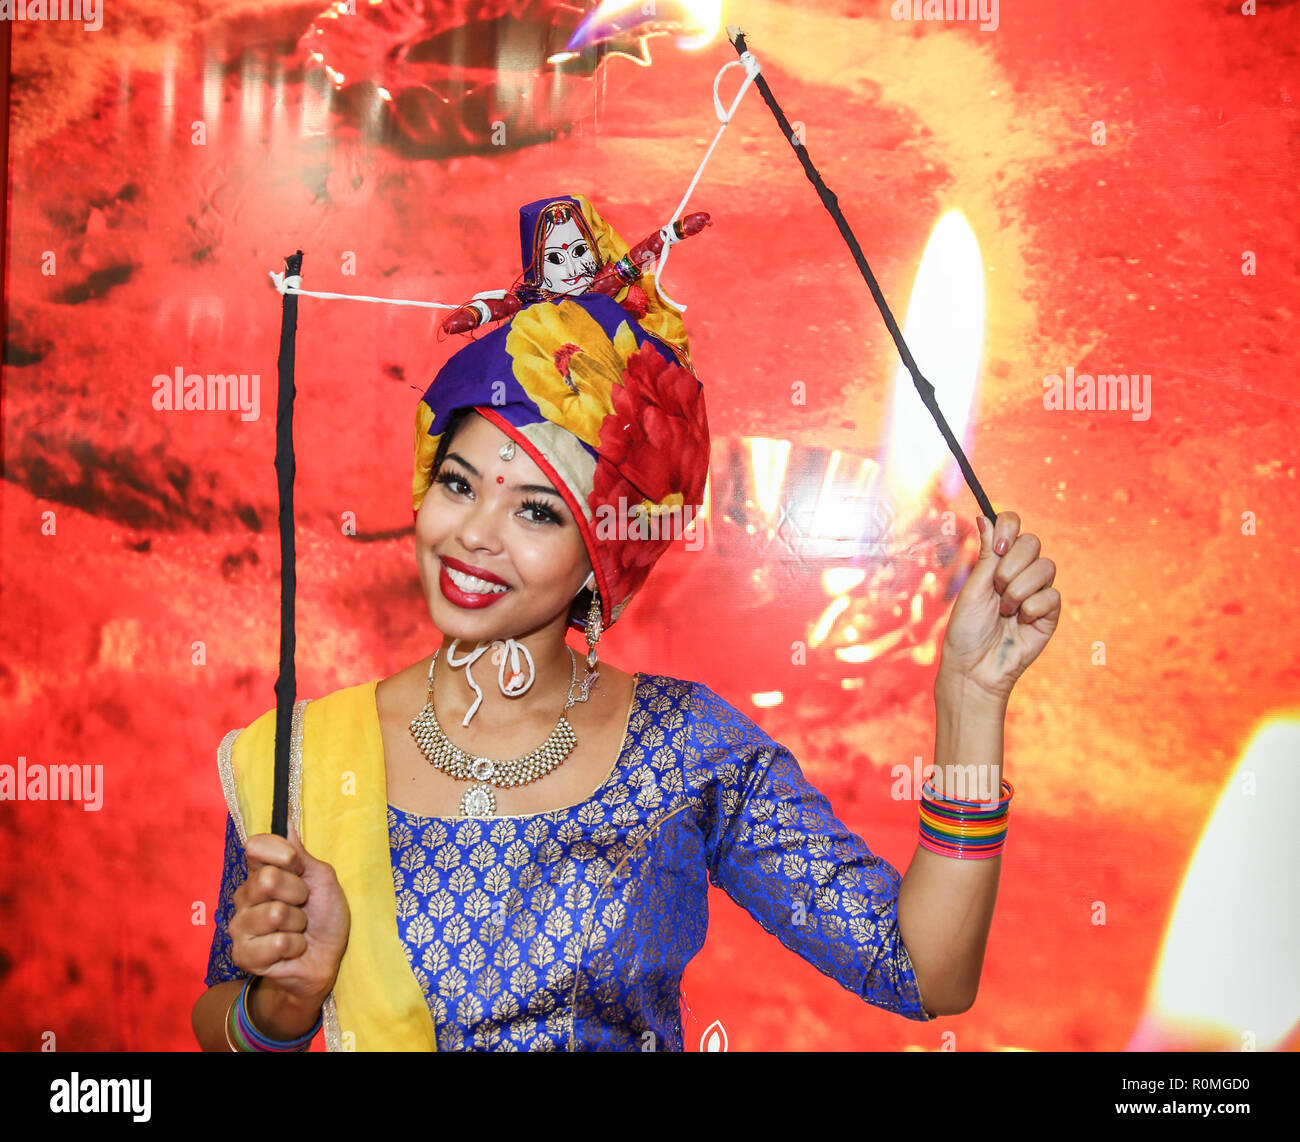 London 05.Nov.2018 WTM 2018 Exhibitors form around the world come to the London fair to do business and bring a bit of their culture, traditional  costumes ,food, dance and music Credit: Paul Quezada-Neiman/Alamy Live News - Stock Image